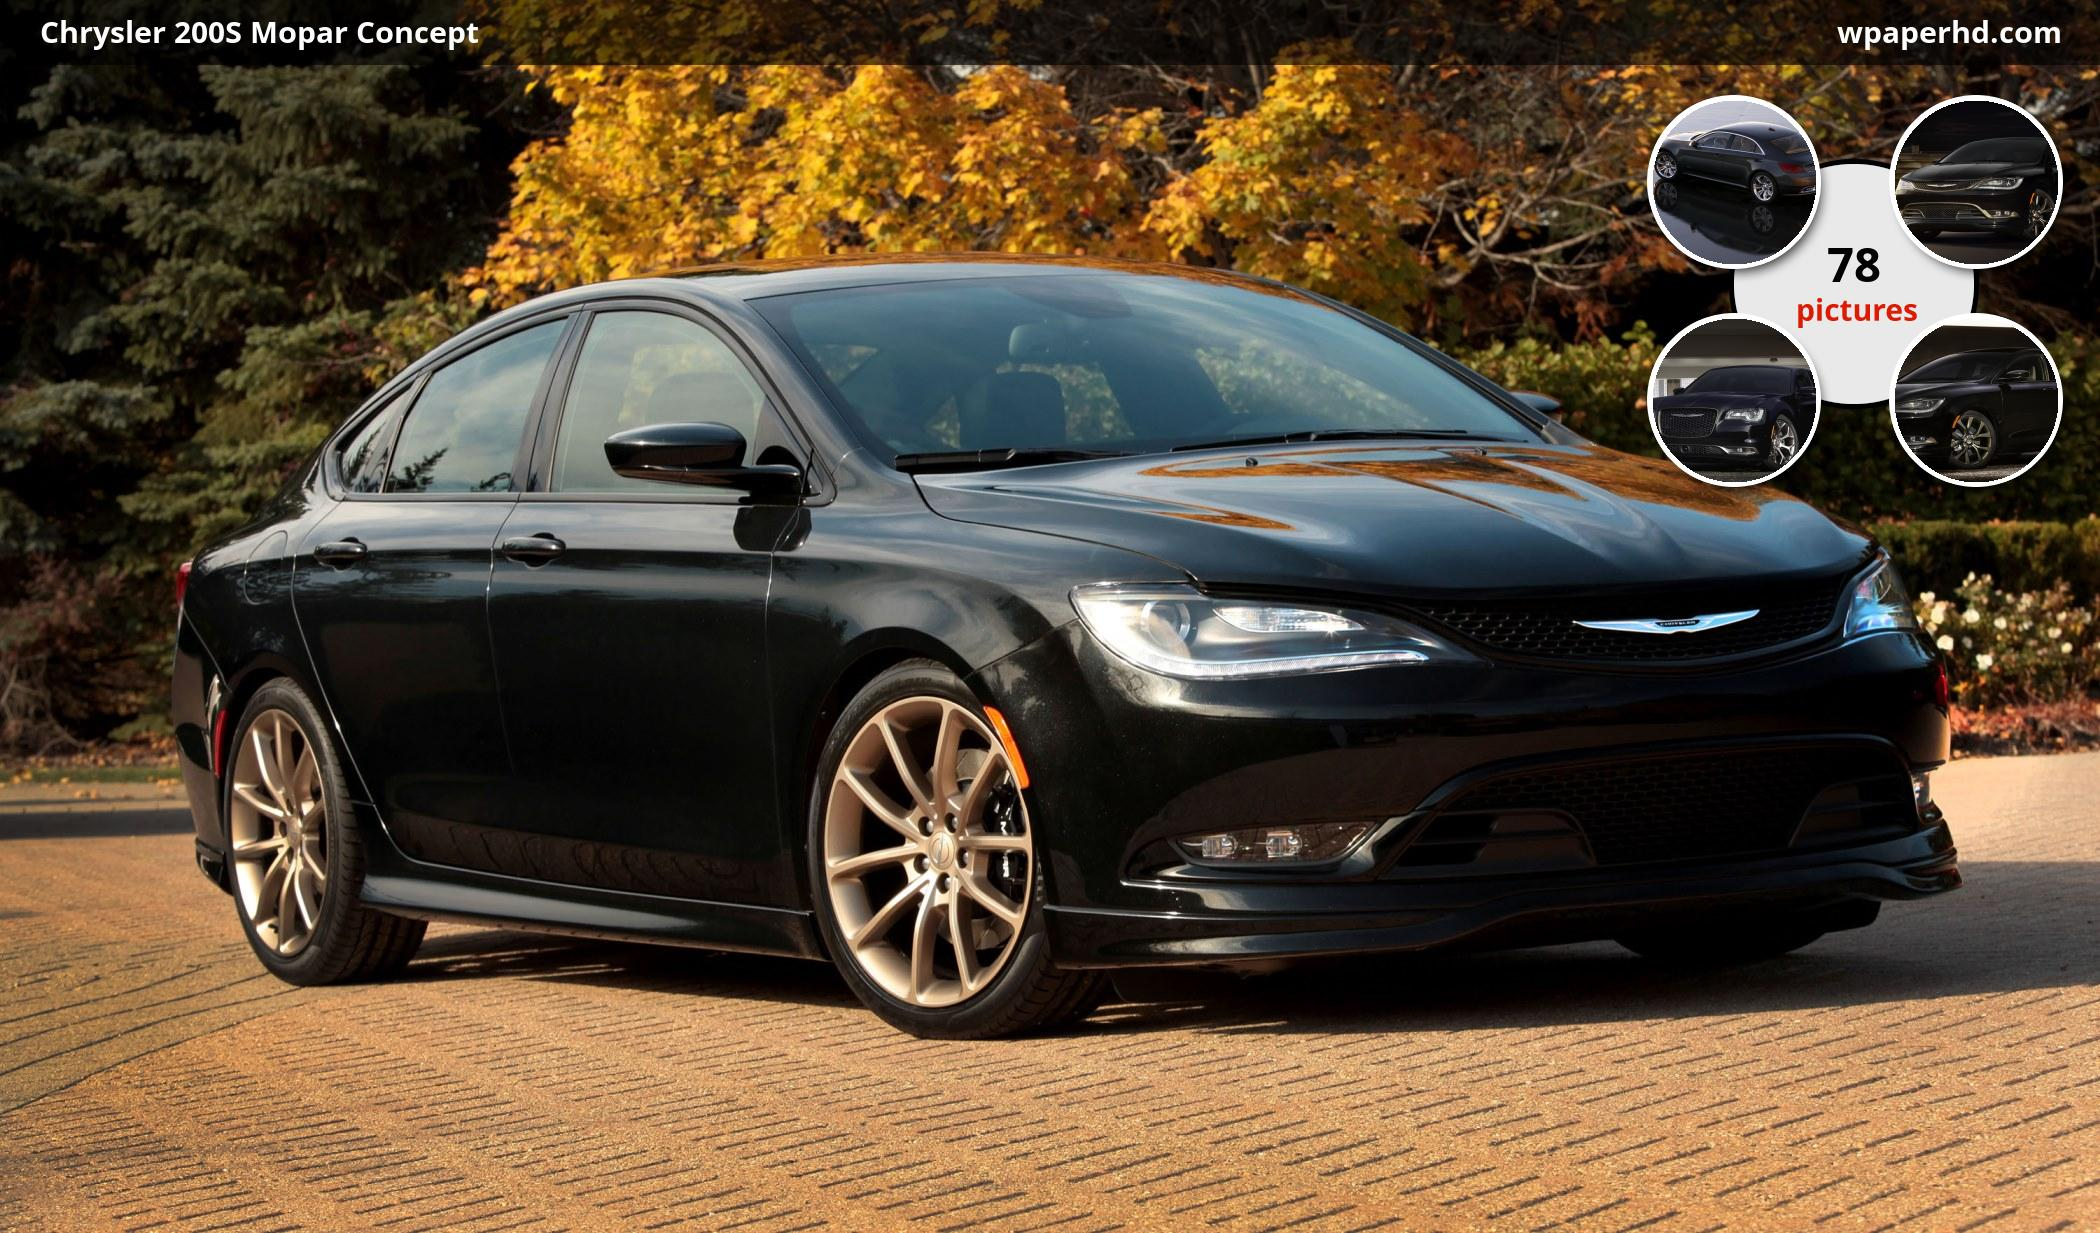 2100x1233 - Chrysler 200 Wallpapers 32